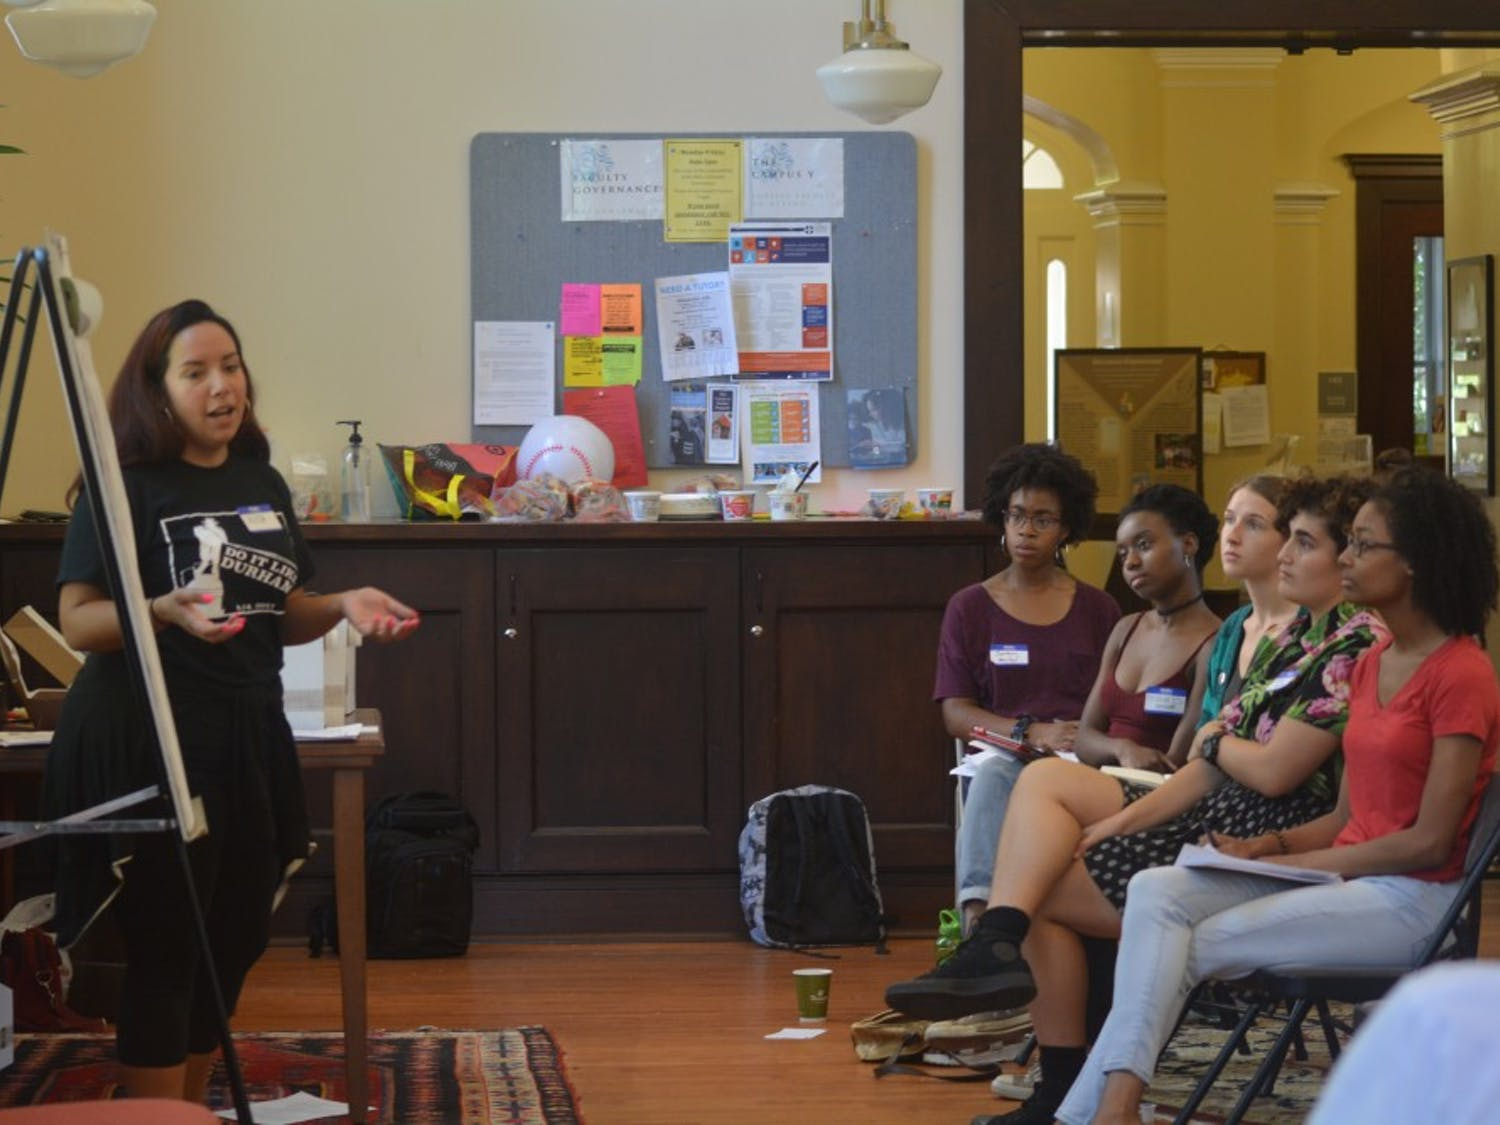 Alissa Ellis, Deputy Director of the Southern Vision Alliance and UNC Law alum, leads a workshop on activism during the Campus Y Ethical Domestic Service Orientation on Saturday morning